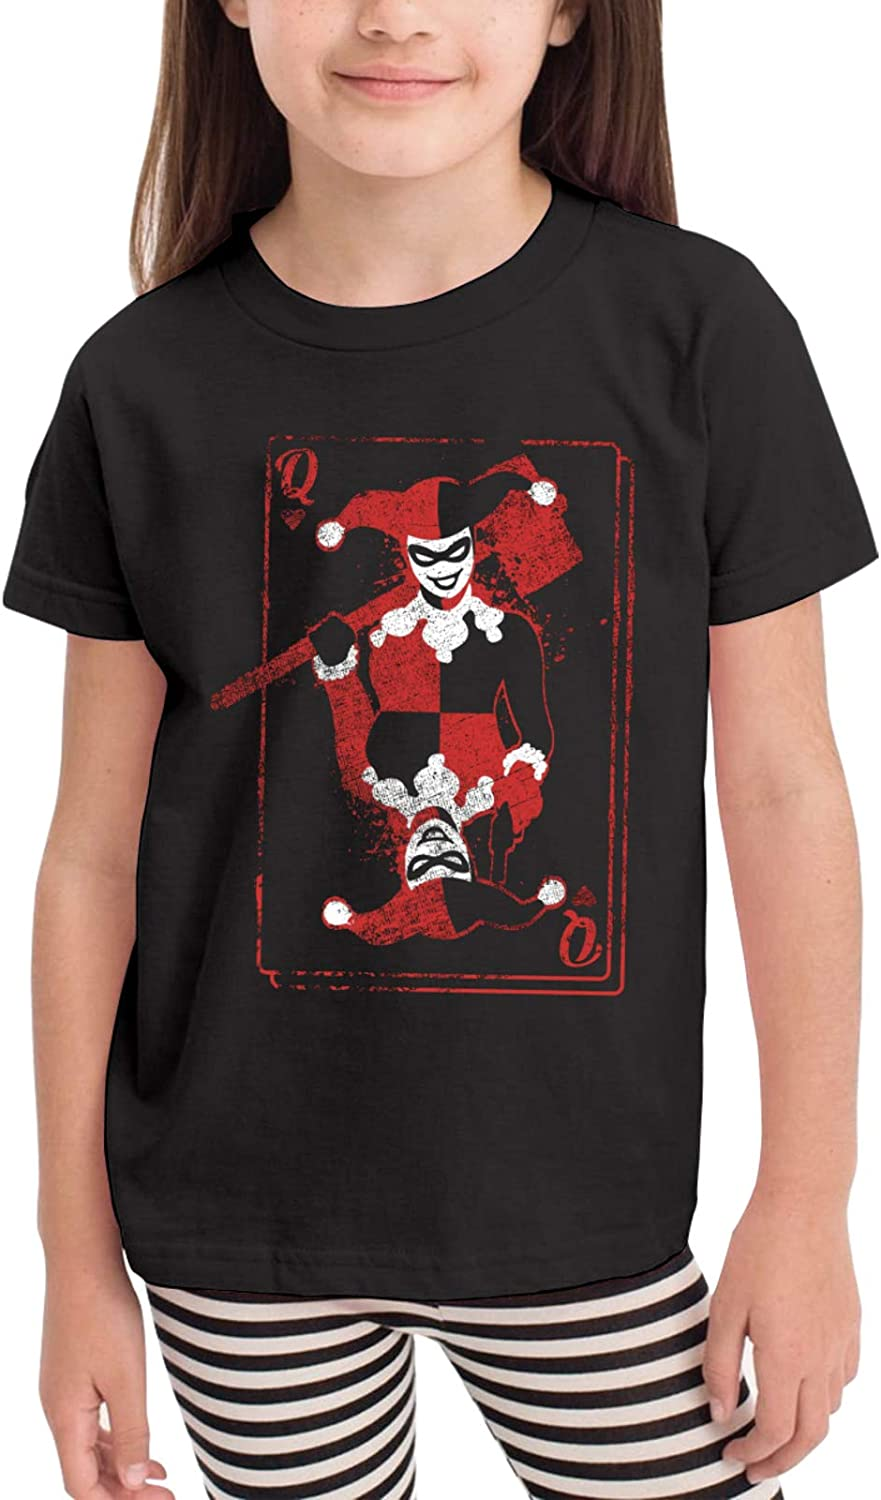 Clown Girl Children's T-Shirt, for 2-6 Years Old Boys & Girls Cotton Toddler Tees, Kids Classic Comfortable Short Sleeve Tops